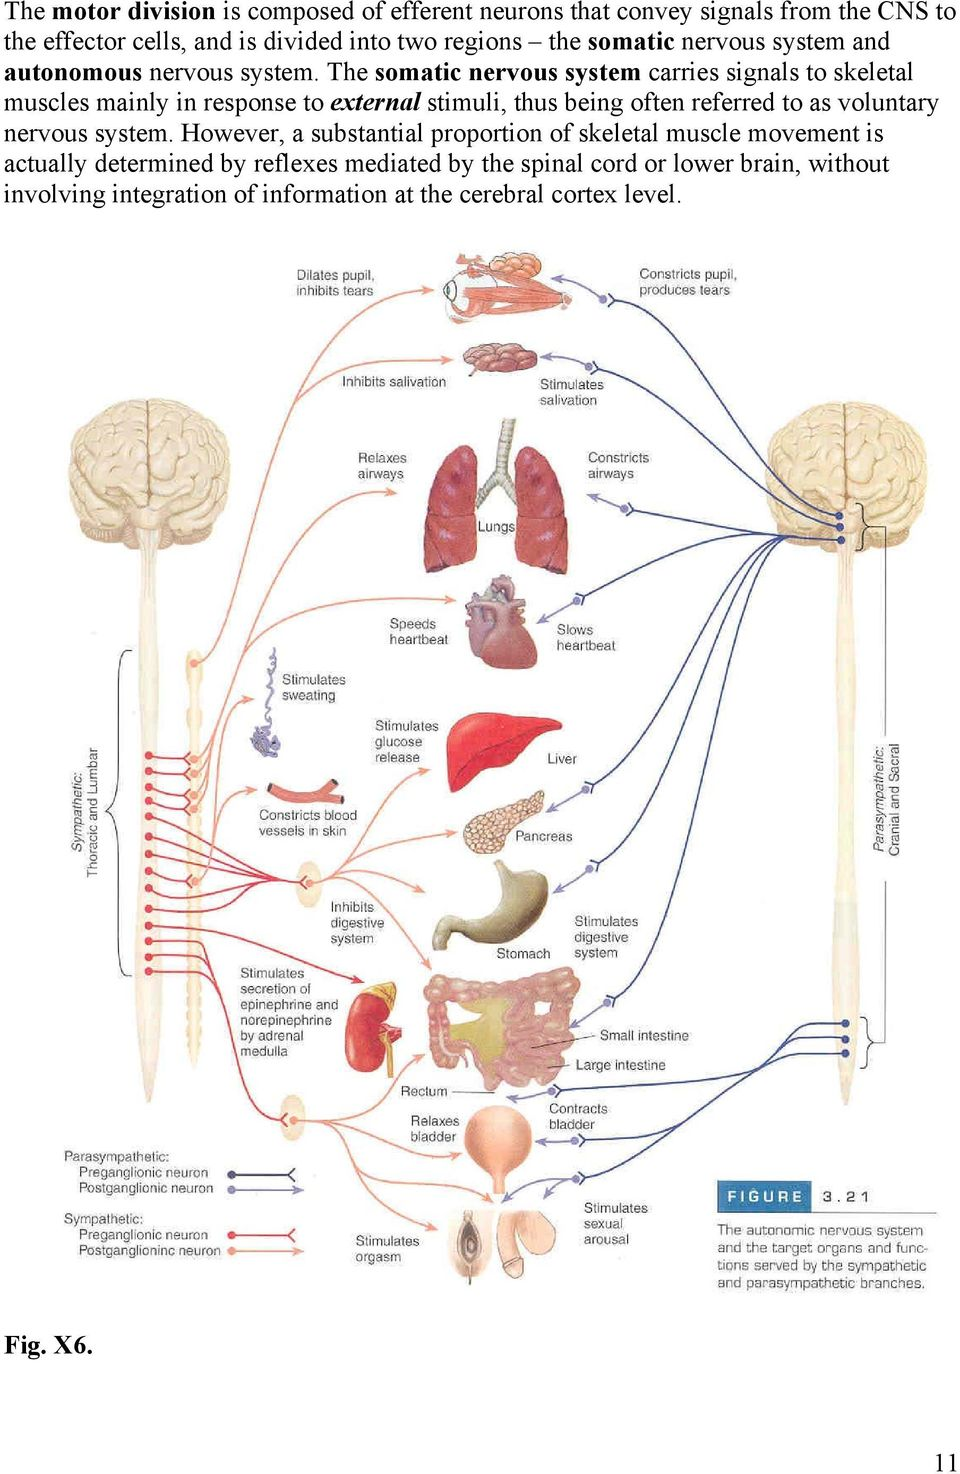 The somatic nervous system carries signals to skeletal muscles mainly in response to external stimuli, thus being often referred to as voluntary